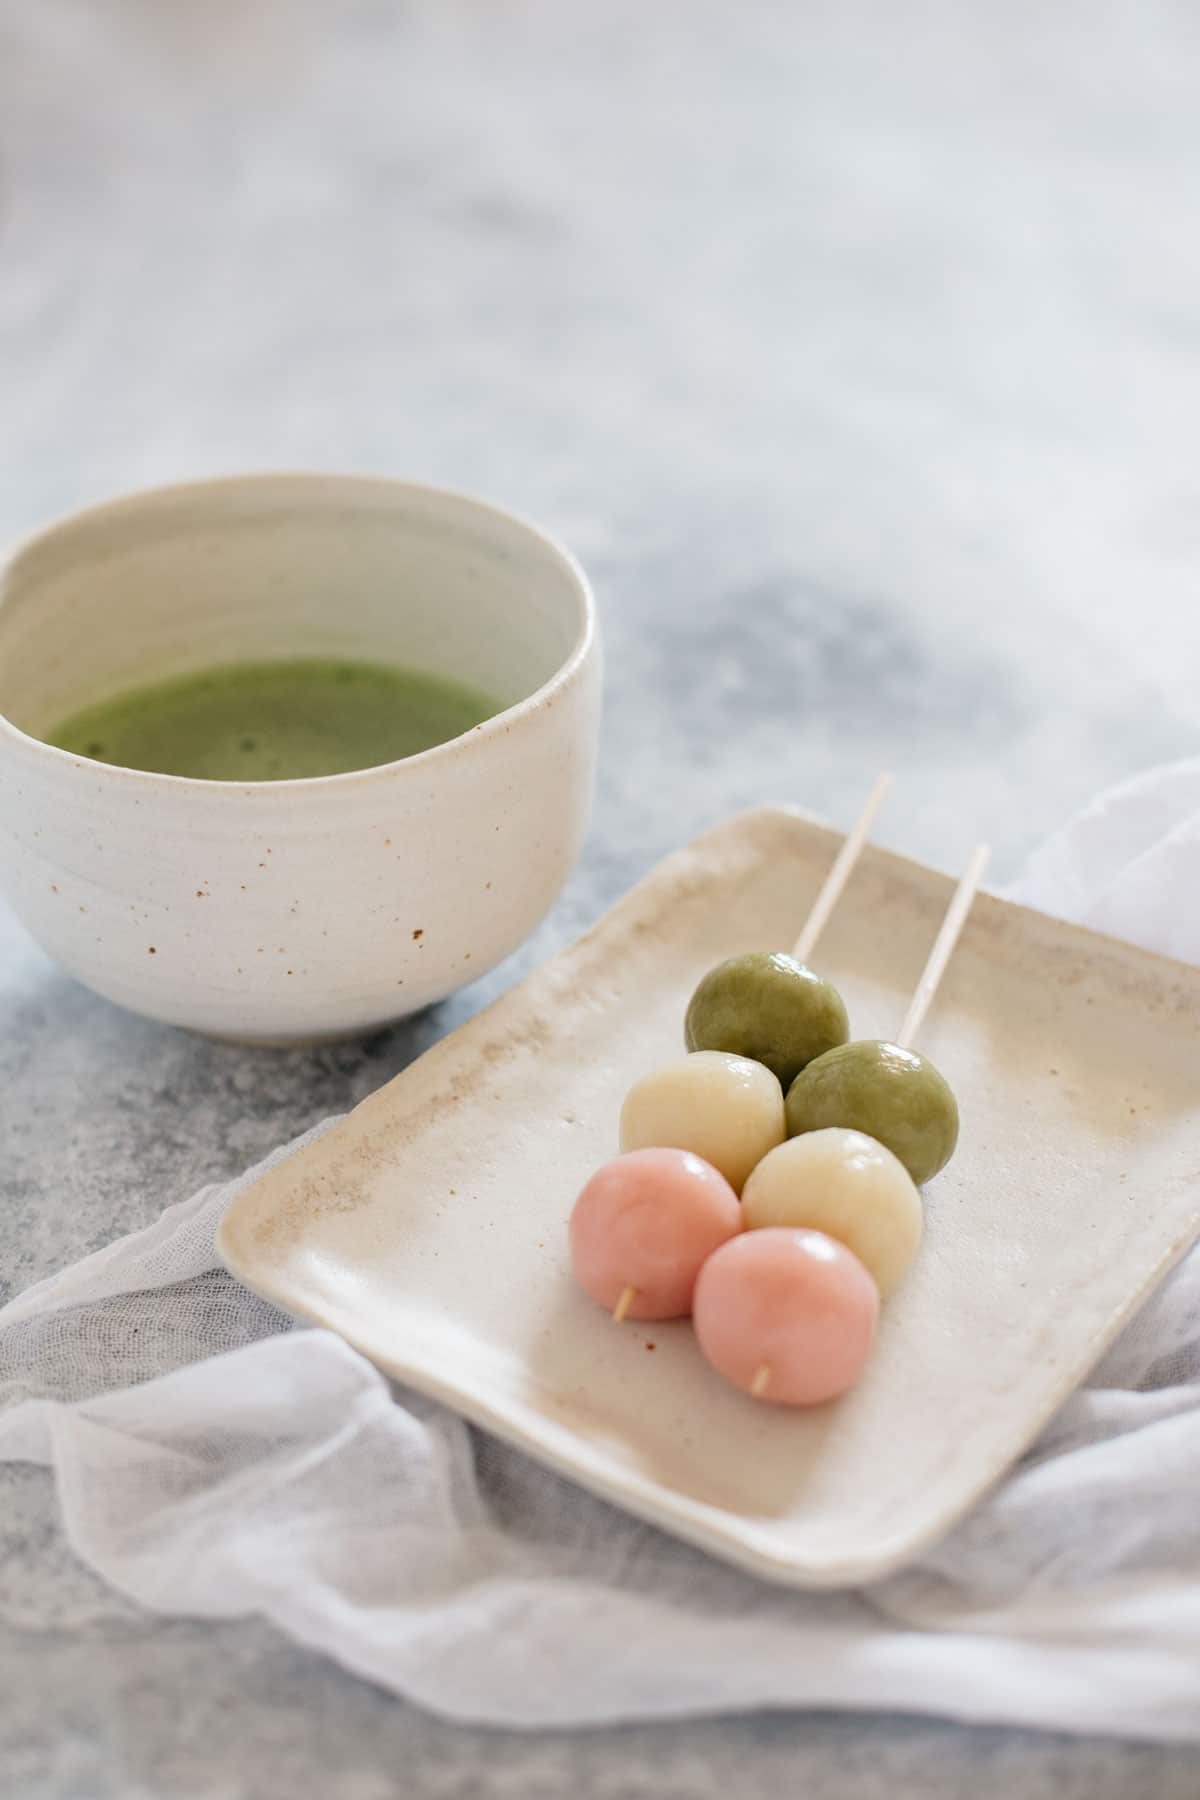 sanshoku dango served with matcha green tea